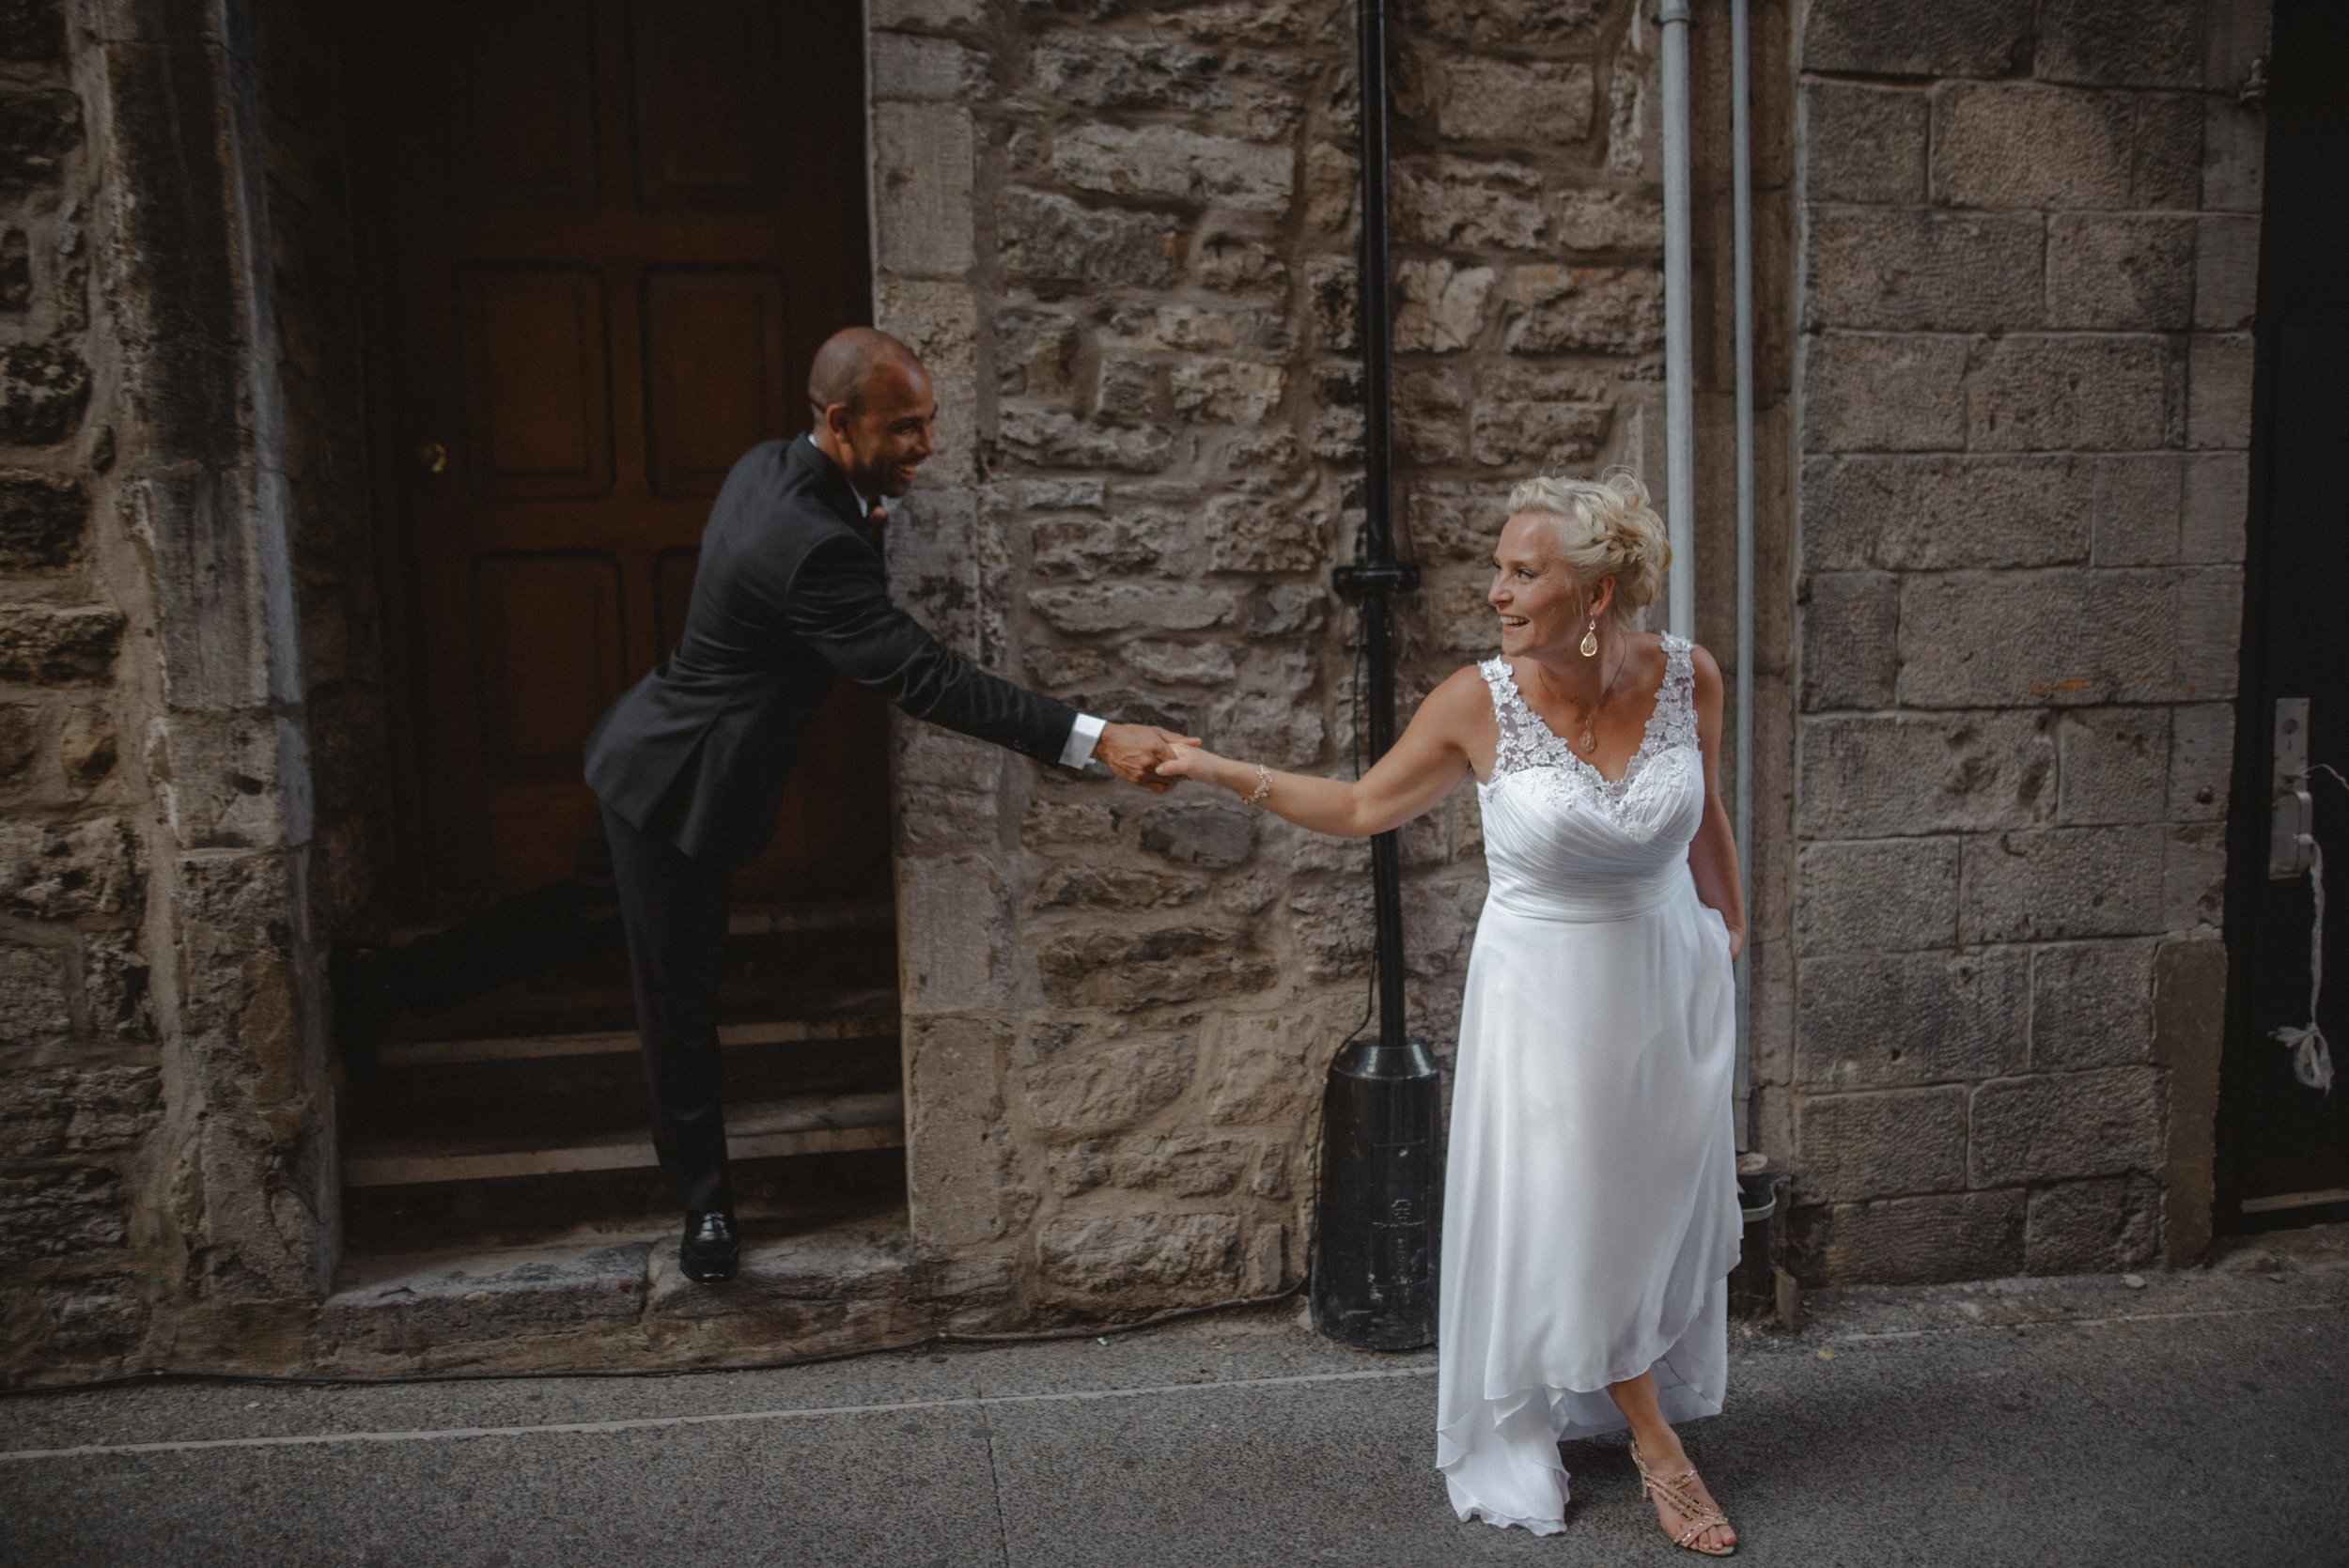 photographe_mariage_gatineau_photographer_montreal_wedding_ottawa-39.jpg